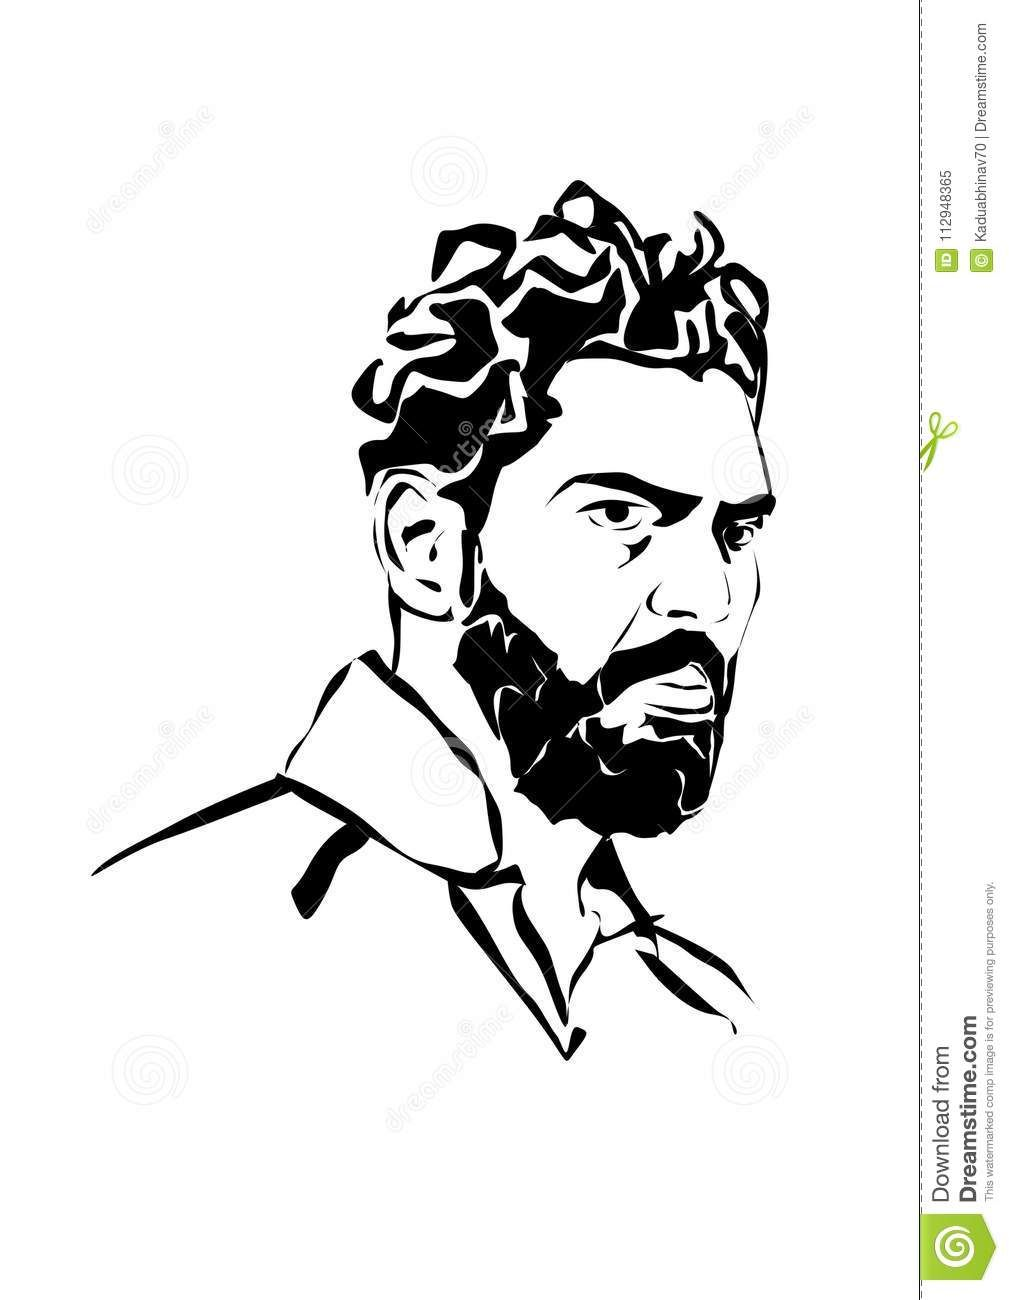 Yuvraj Singh Drawing Black And White